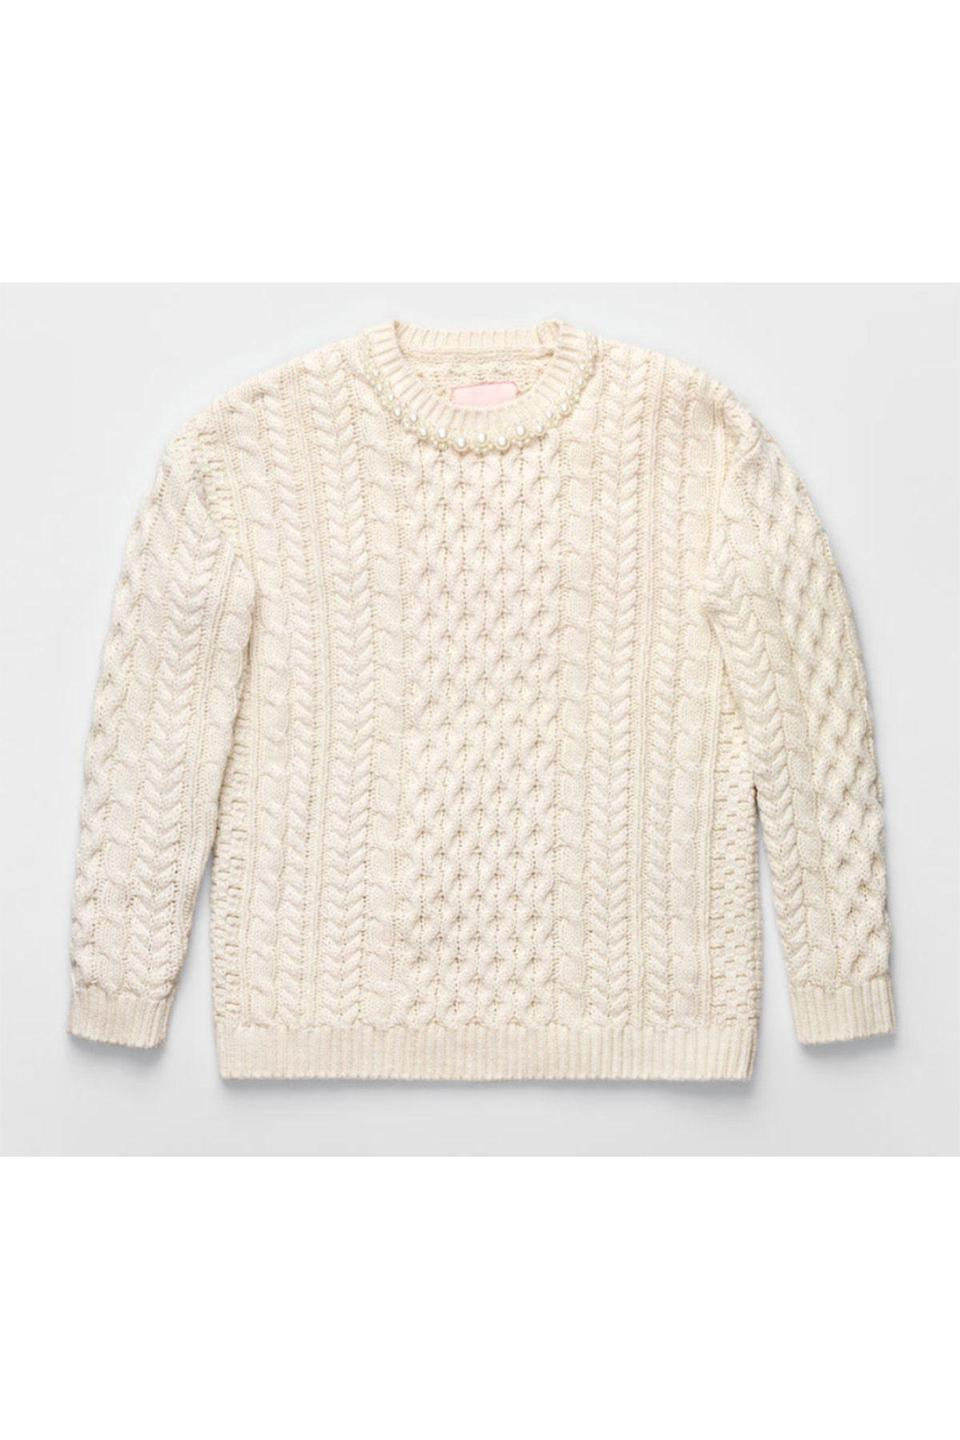 "<p><strong>H&M x Simone Rocha </strong></p><p>hm.com</p><p><strong>$99.00</strong></p><p><a href=""https://go.redirectingat.com?id=74968X1596630&url=https%3A%2F%2Fwww2.hm.com%2Fen_us%2Fproductpage.0902759003.html&sref=https%3A%2F%2Fwww.townandcountrymag.com%2Fstyle%2Ffashion-trends%2Fg35800778%2Fsimone-rocha-hm-launch-dreamy-collaboration%2F"" rel=""nofollow noopener"" target=""_blank"" data-ylk=""slk:Shop Now"" class=""link rapid-noclick-resp"">Shop Now</a></p>"